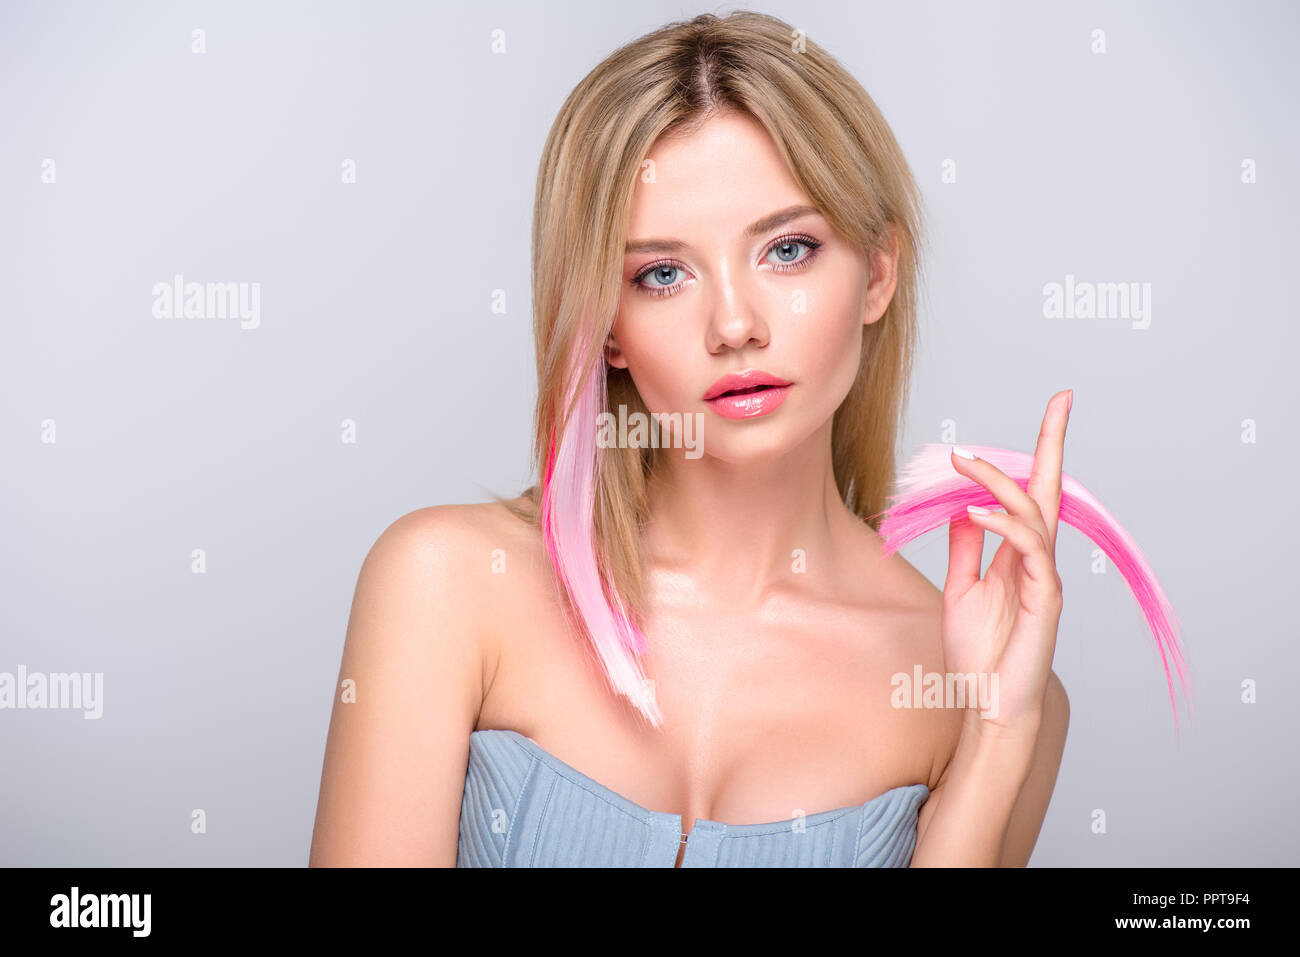 Hair Extensions Cut Stock Photos Hair Extensions Cut Stock Images